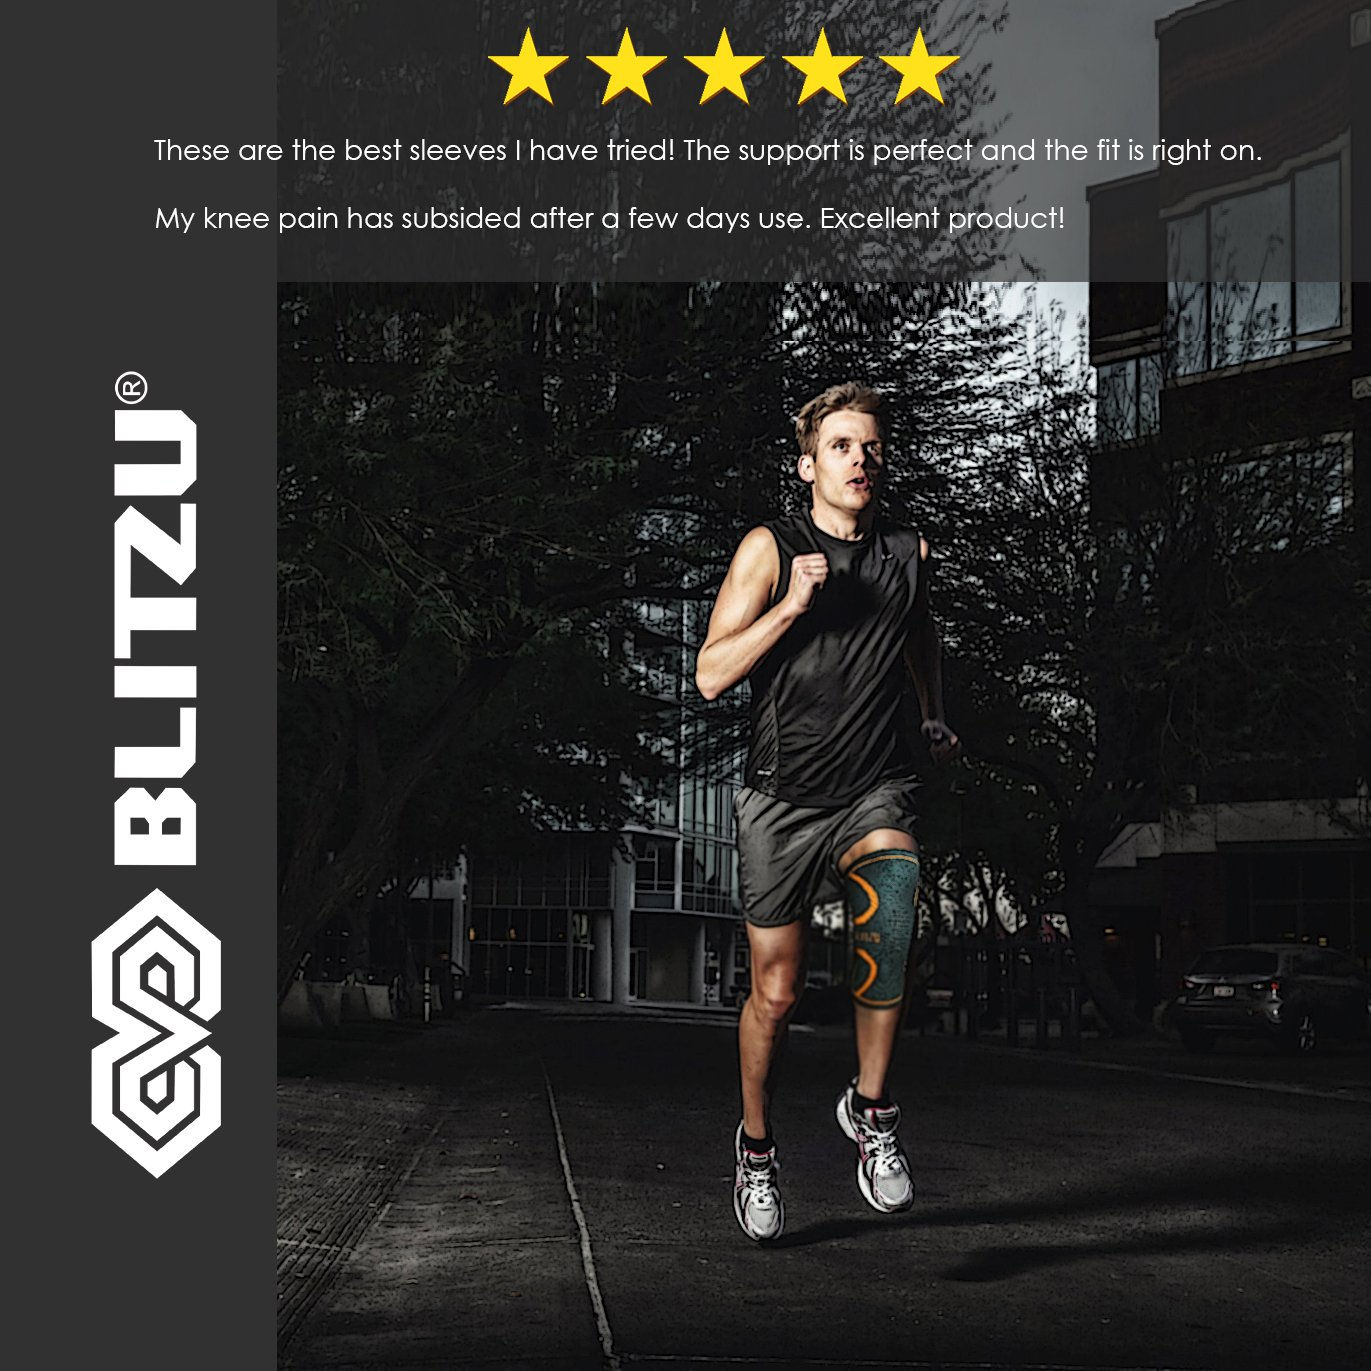 b945c7a0cf BLITZU Flex Plus Compression Knee Brace for Joint Pain, ACL MCL Arthritis  Relief Improve Circulation Support for Running Gym Workout Recovery Best  Sleeves ...